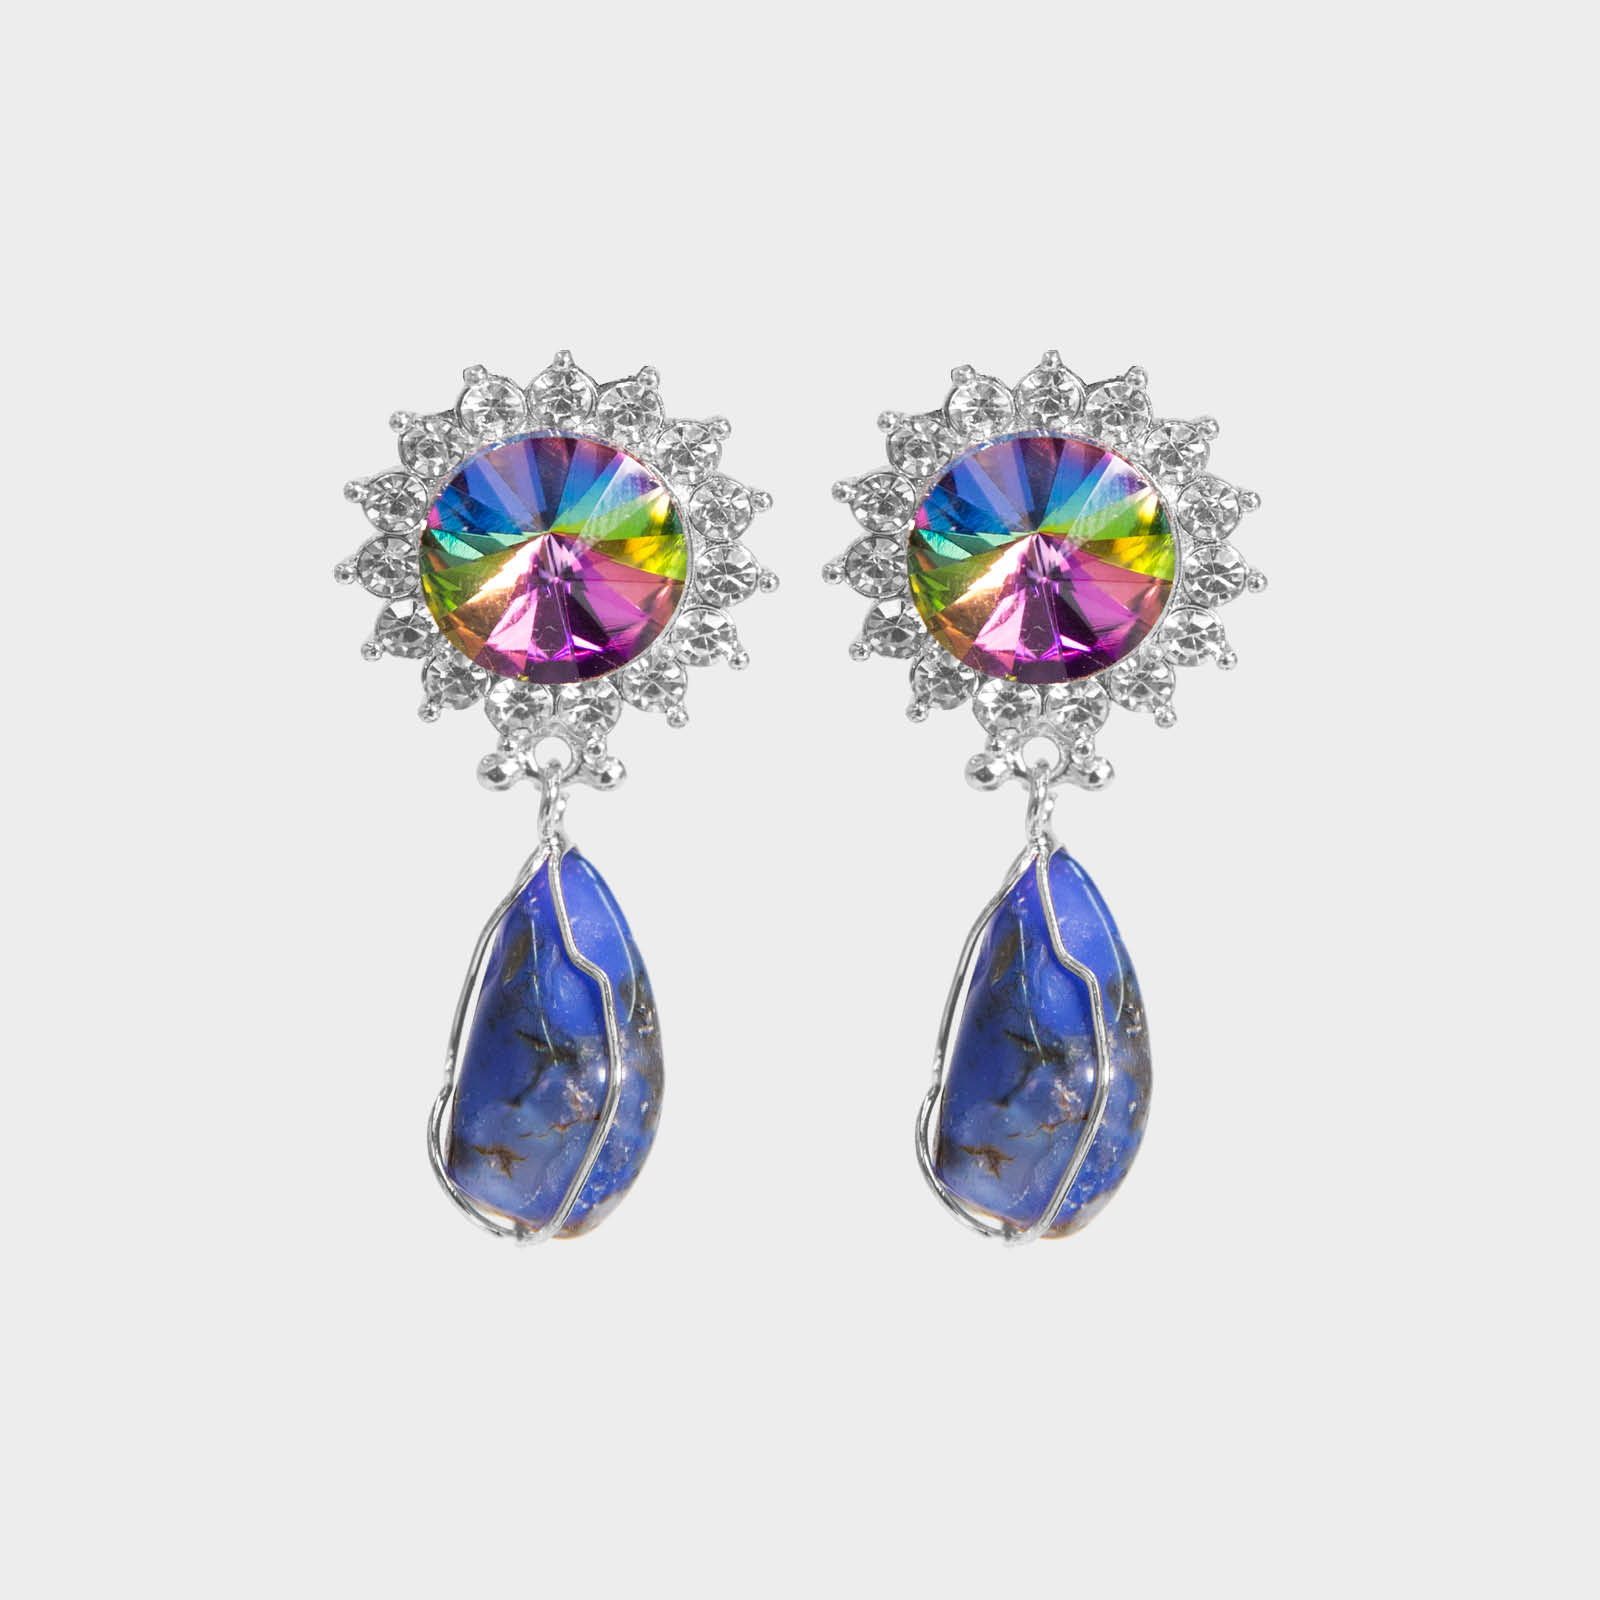 Colorful Marilyn Stone Earrings